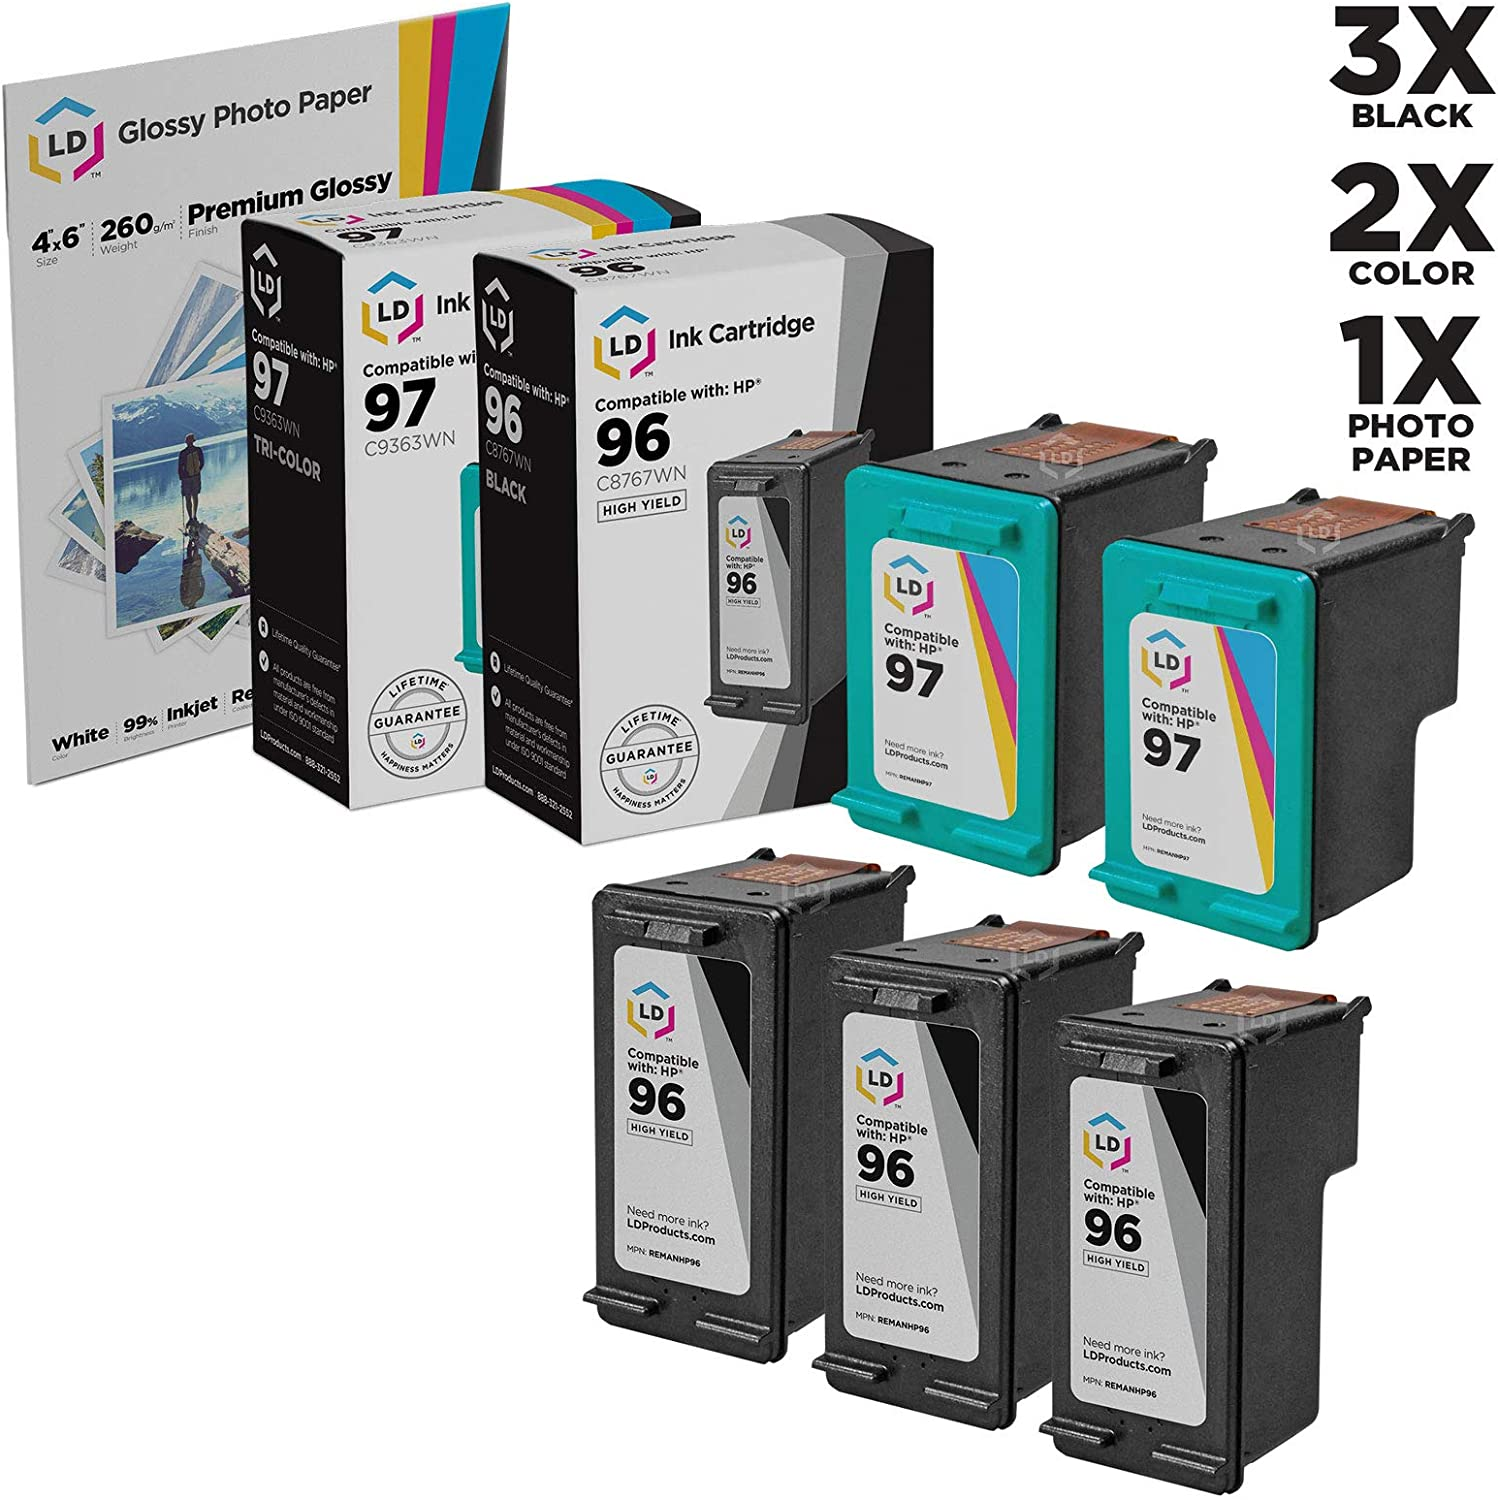 LD Remanufactured Ink Cartridge Replacements for HP 96 & HP 97 High Yield (3 Black, 2 Color, 5-Pack)